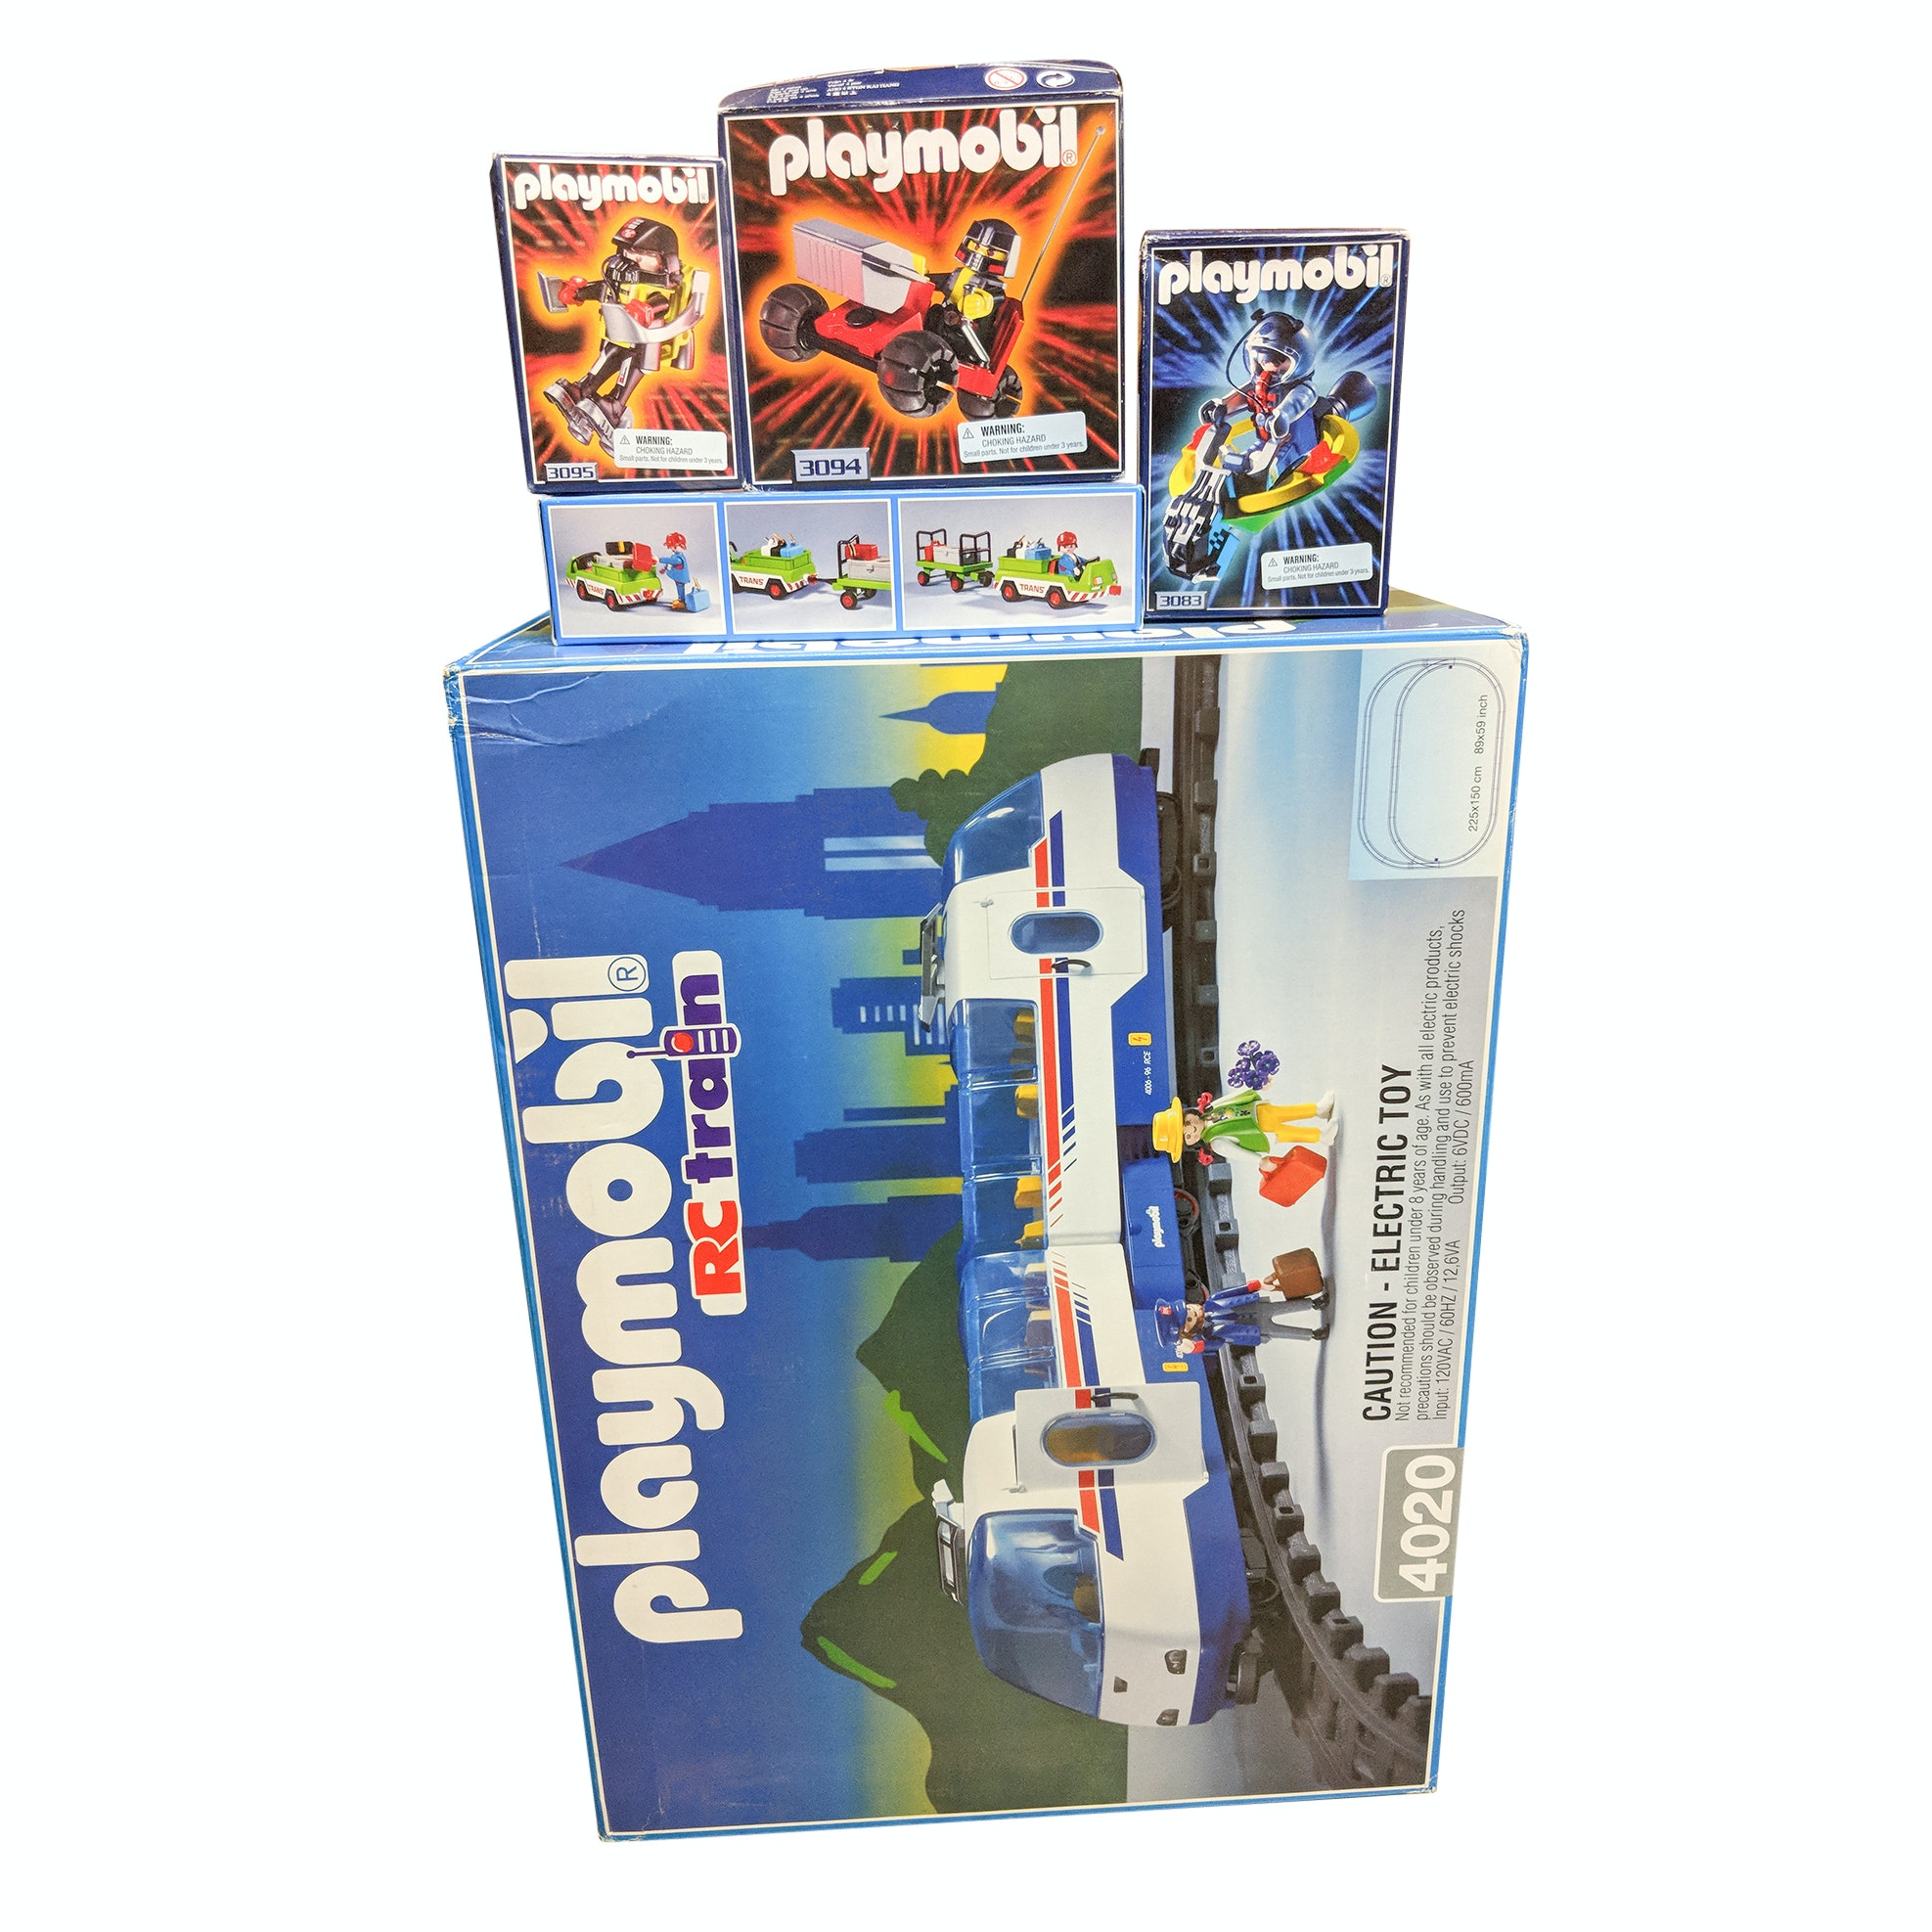 Five Playmobil RC Train and Construction Building Sets, New in Original Boxes